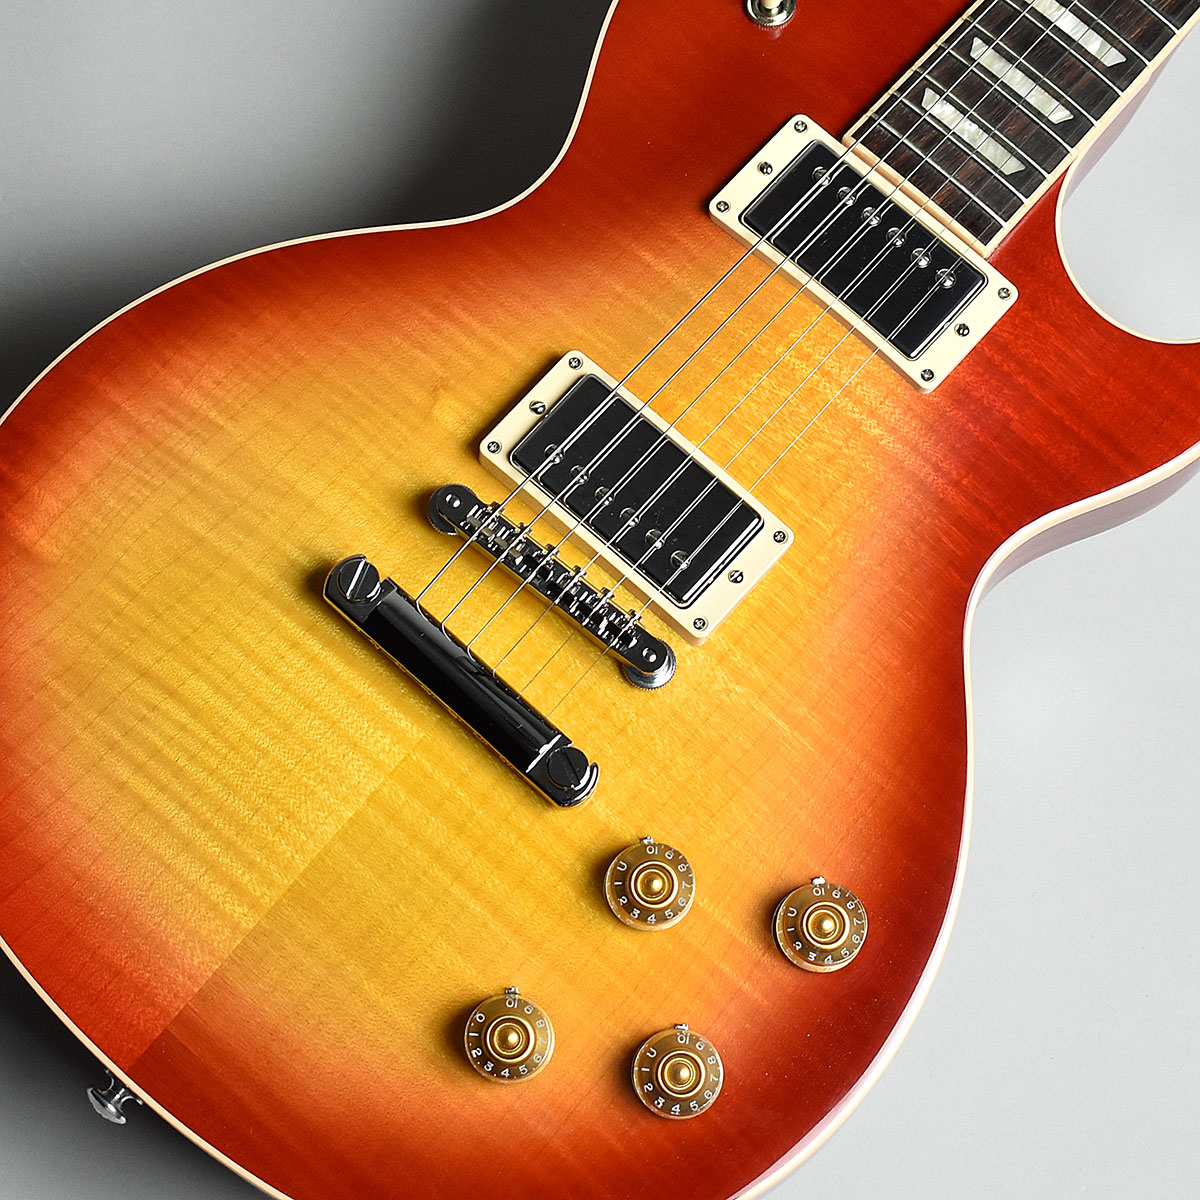 Gibson Les Paul Traditional Pro Plus 2017 Limited Heritage Cherry Sunburst S/N:170067221 レスポールトラディショナル 【ギブソン】【未展示品】